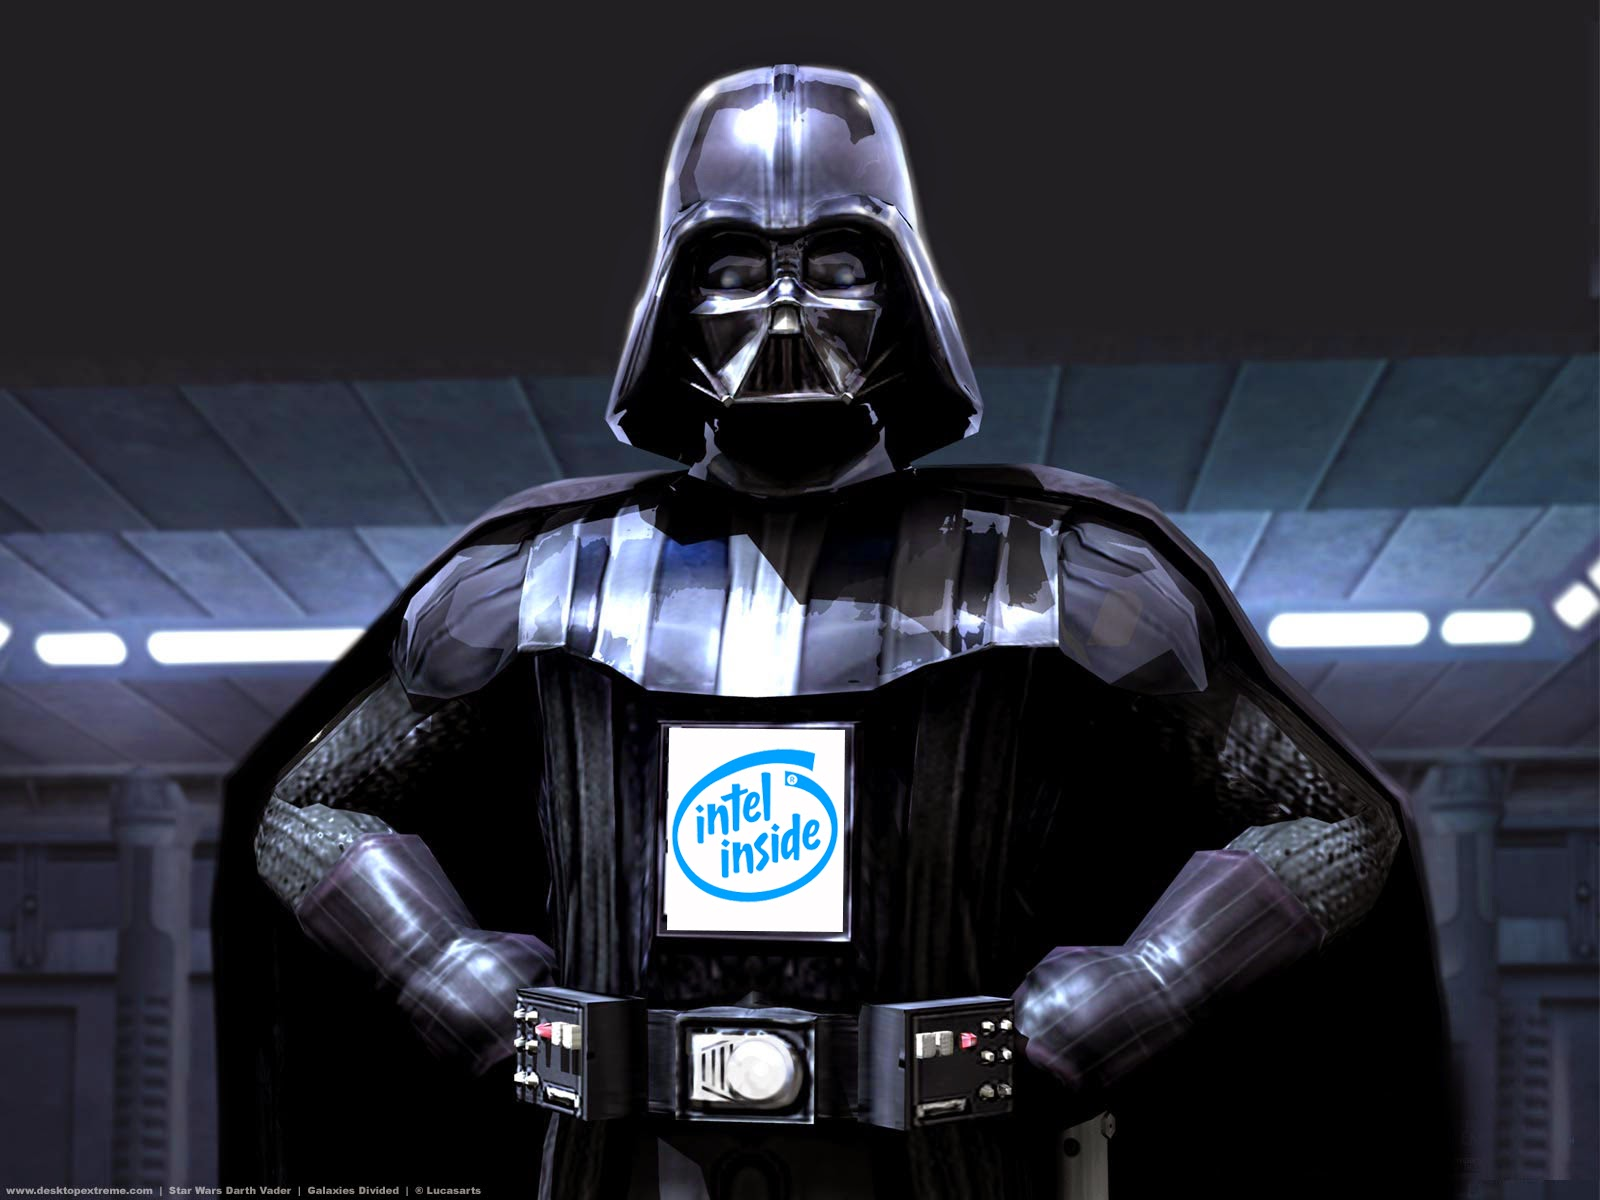 DARPA Vader and the Evil Intel Empire Inside Darth-vader-intel